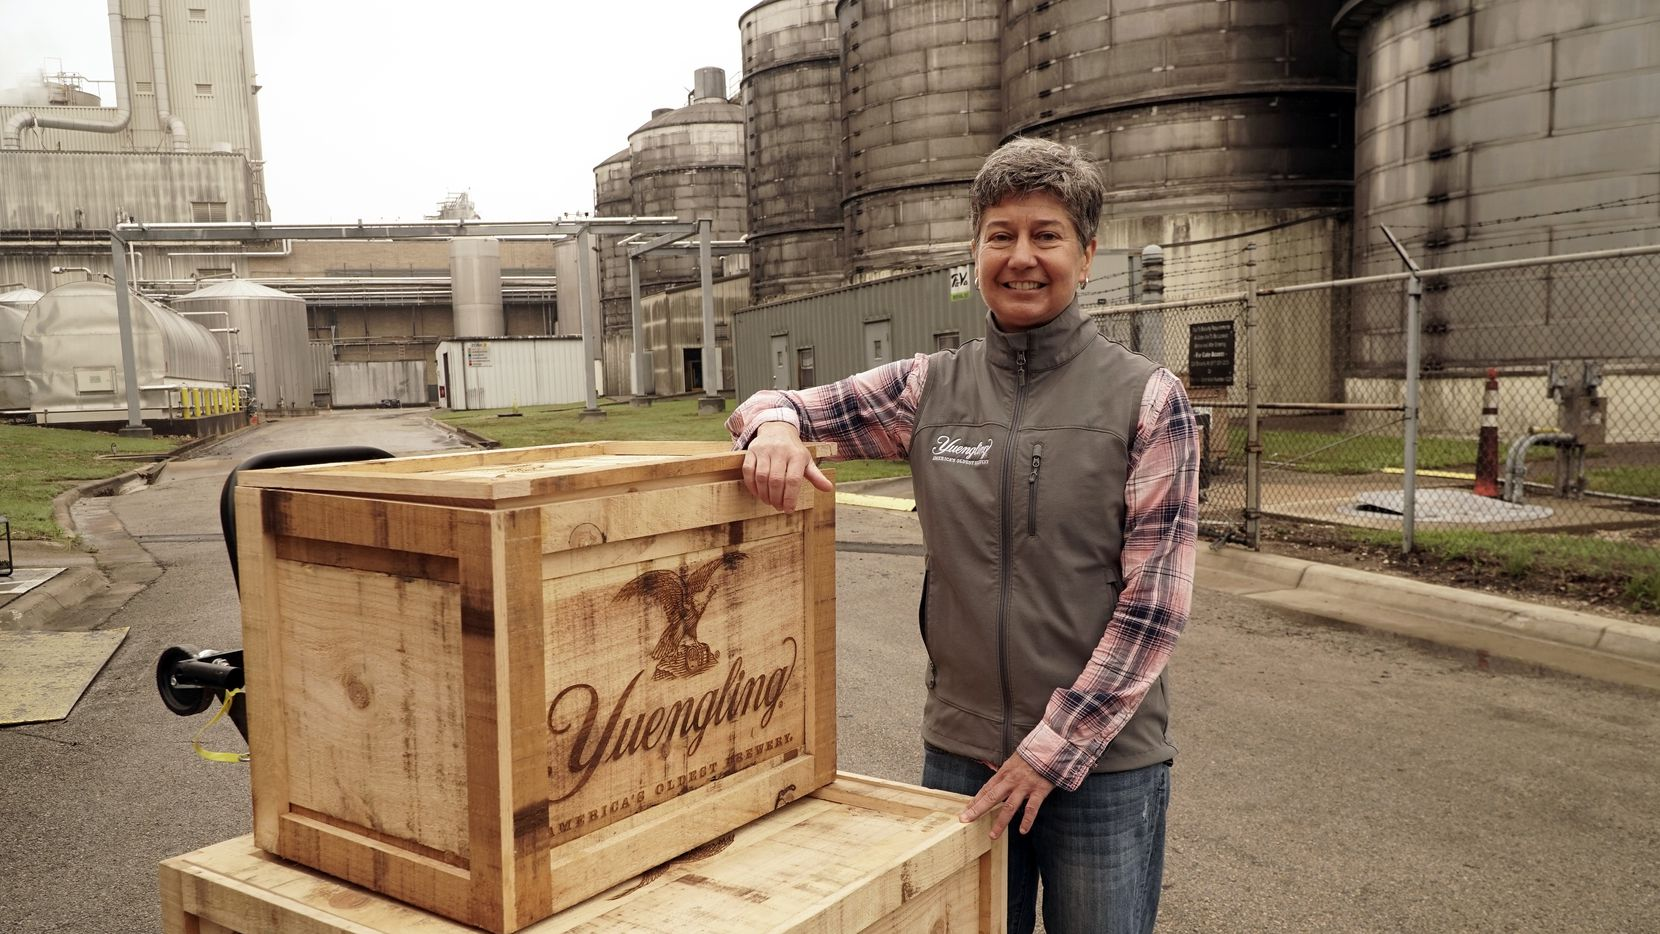 Jennifer Yuengling poses with the Yuengling recipe at Molson Coors' facility in Fort Worth on May 11, 2021.